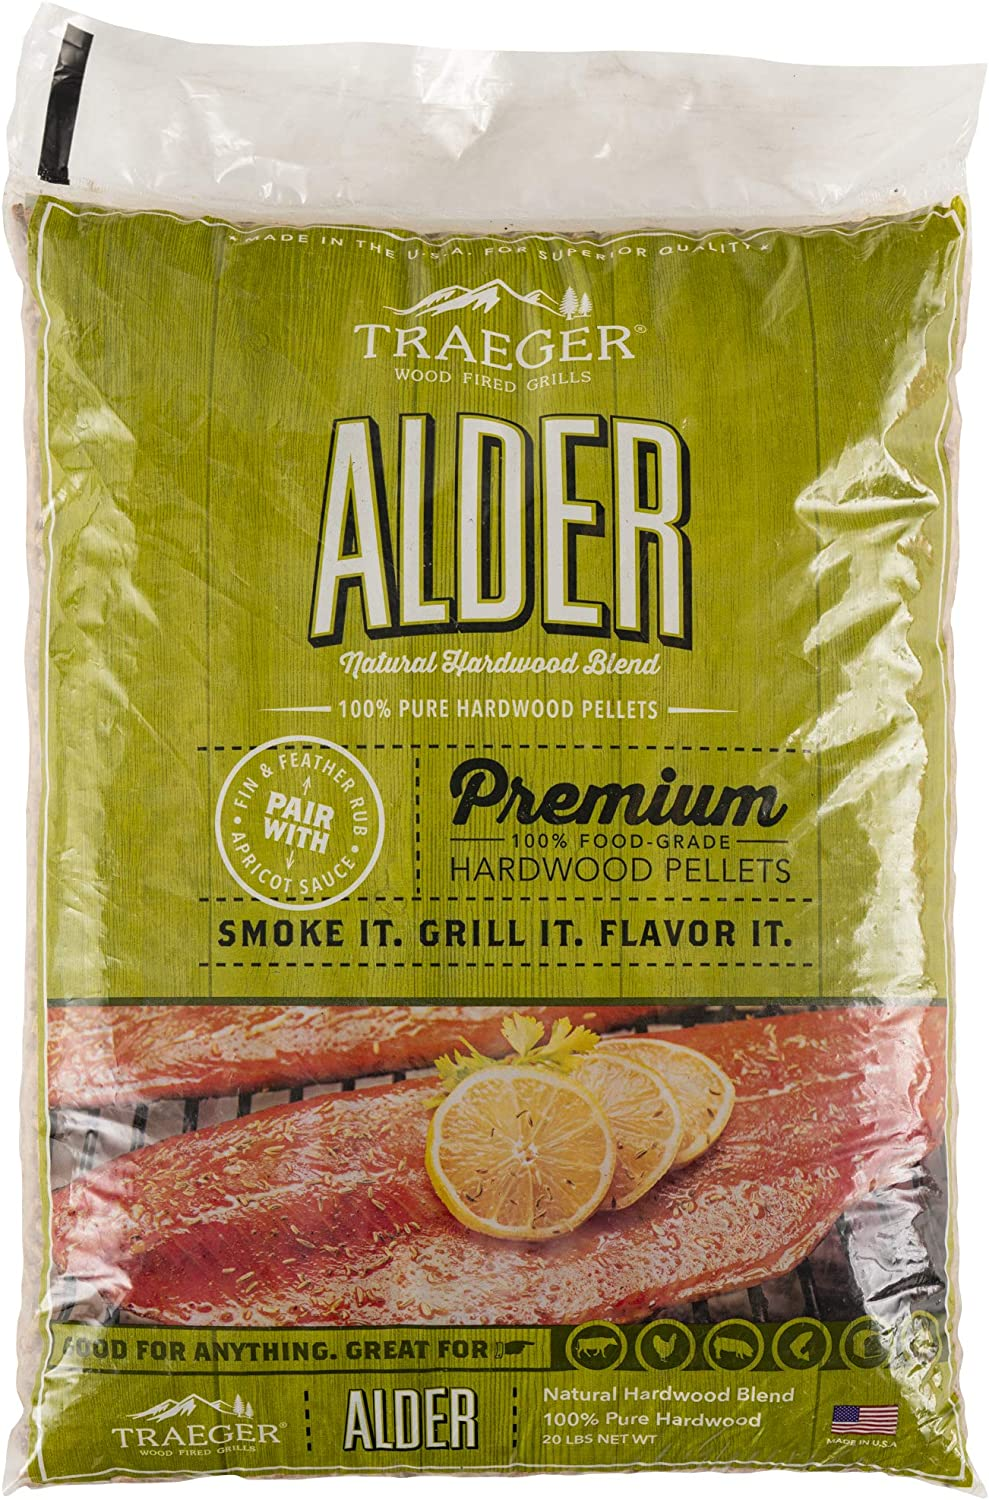 Traeger Grills PEL307 Alder 100% All-Natural Hardwood Pellets Grill, Smoke, Bake, Roast, Braise and BBQ, 20 lb. Bag